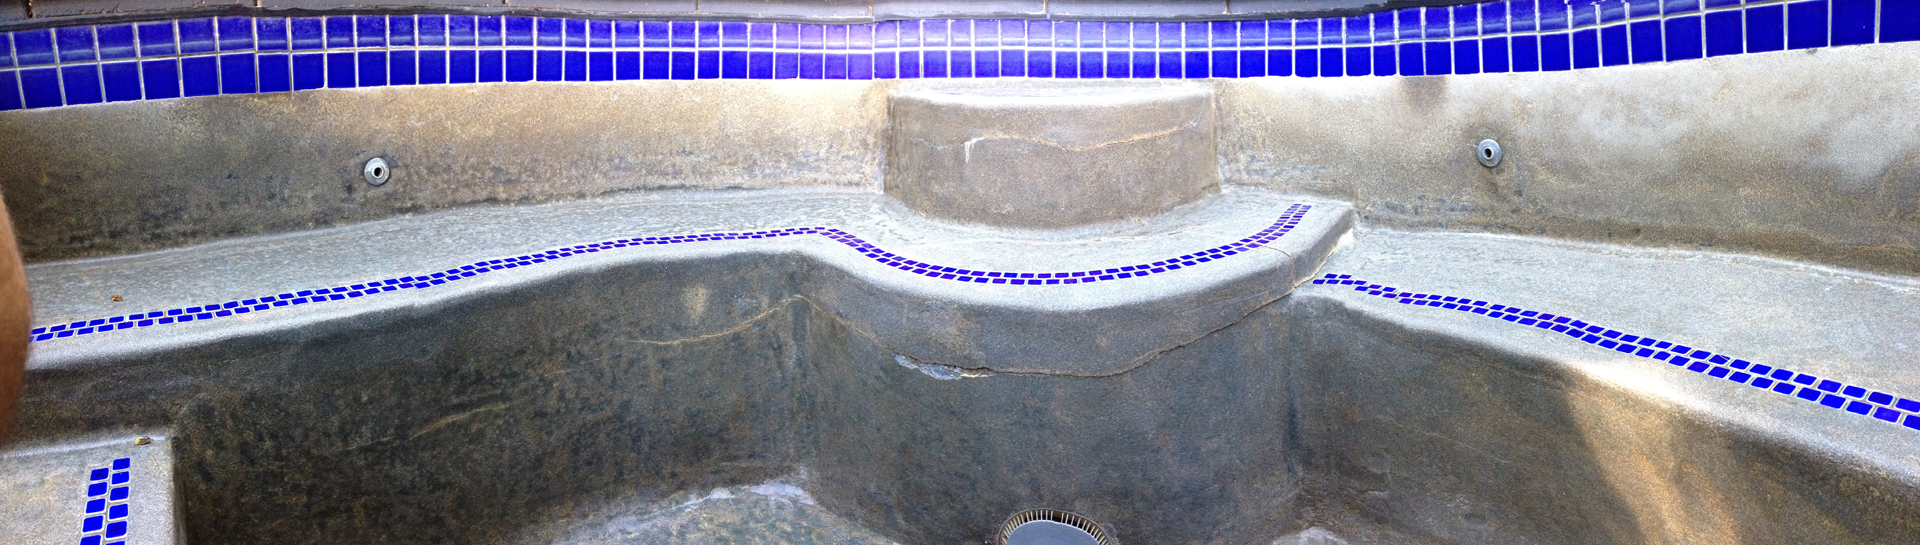 Pool crack repair golden pool services pool remodeling and pool repair How to fix a swimming pool leak